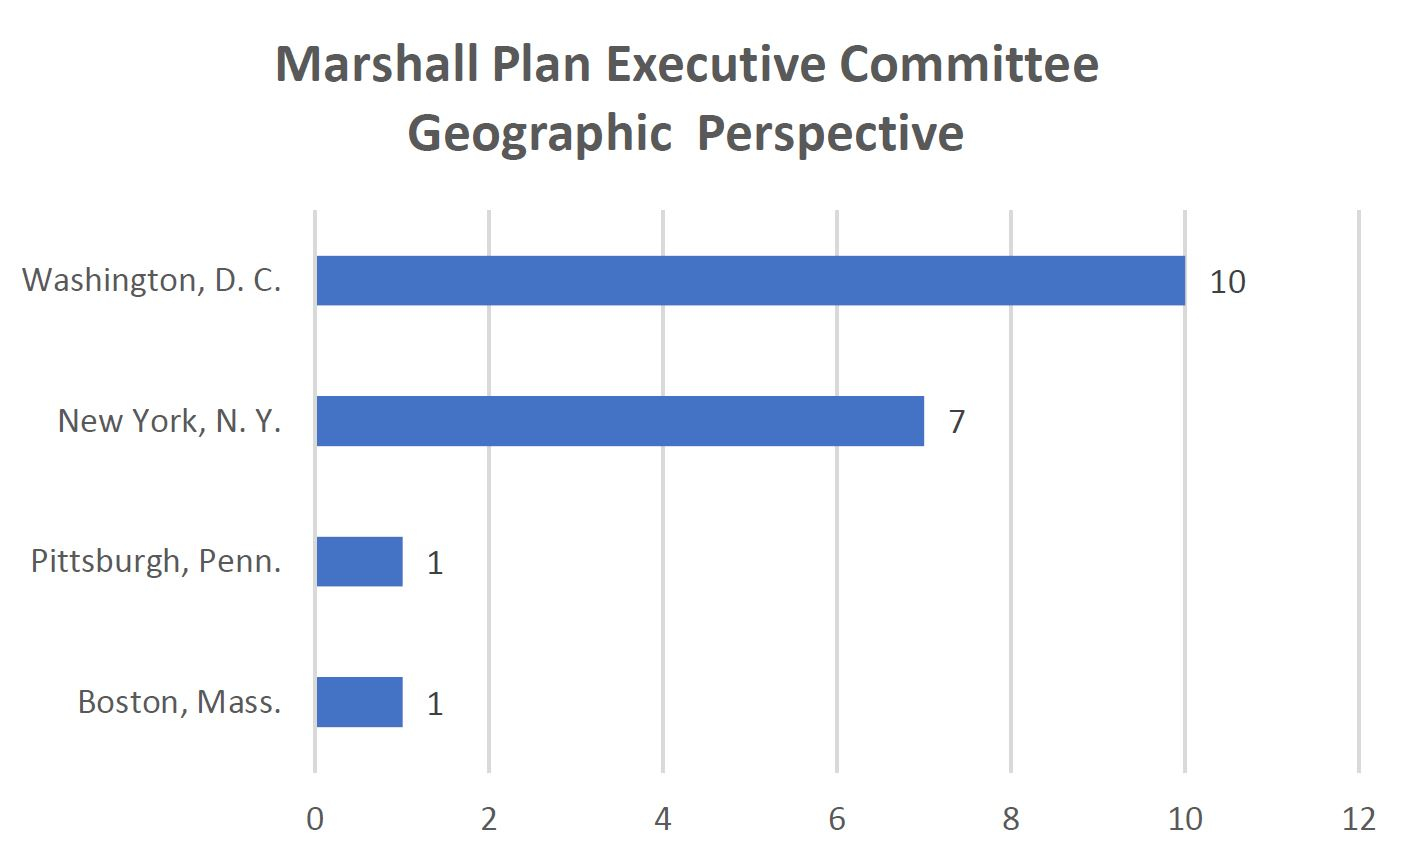 Marshall Plan Executive Committee Geographic Representation